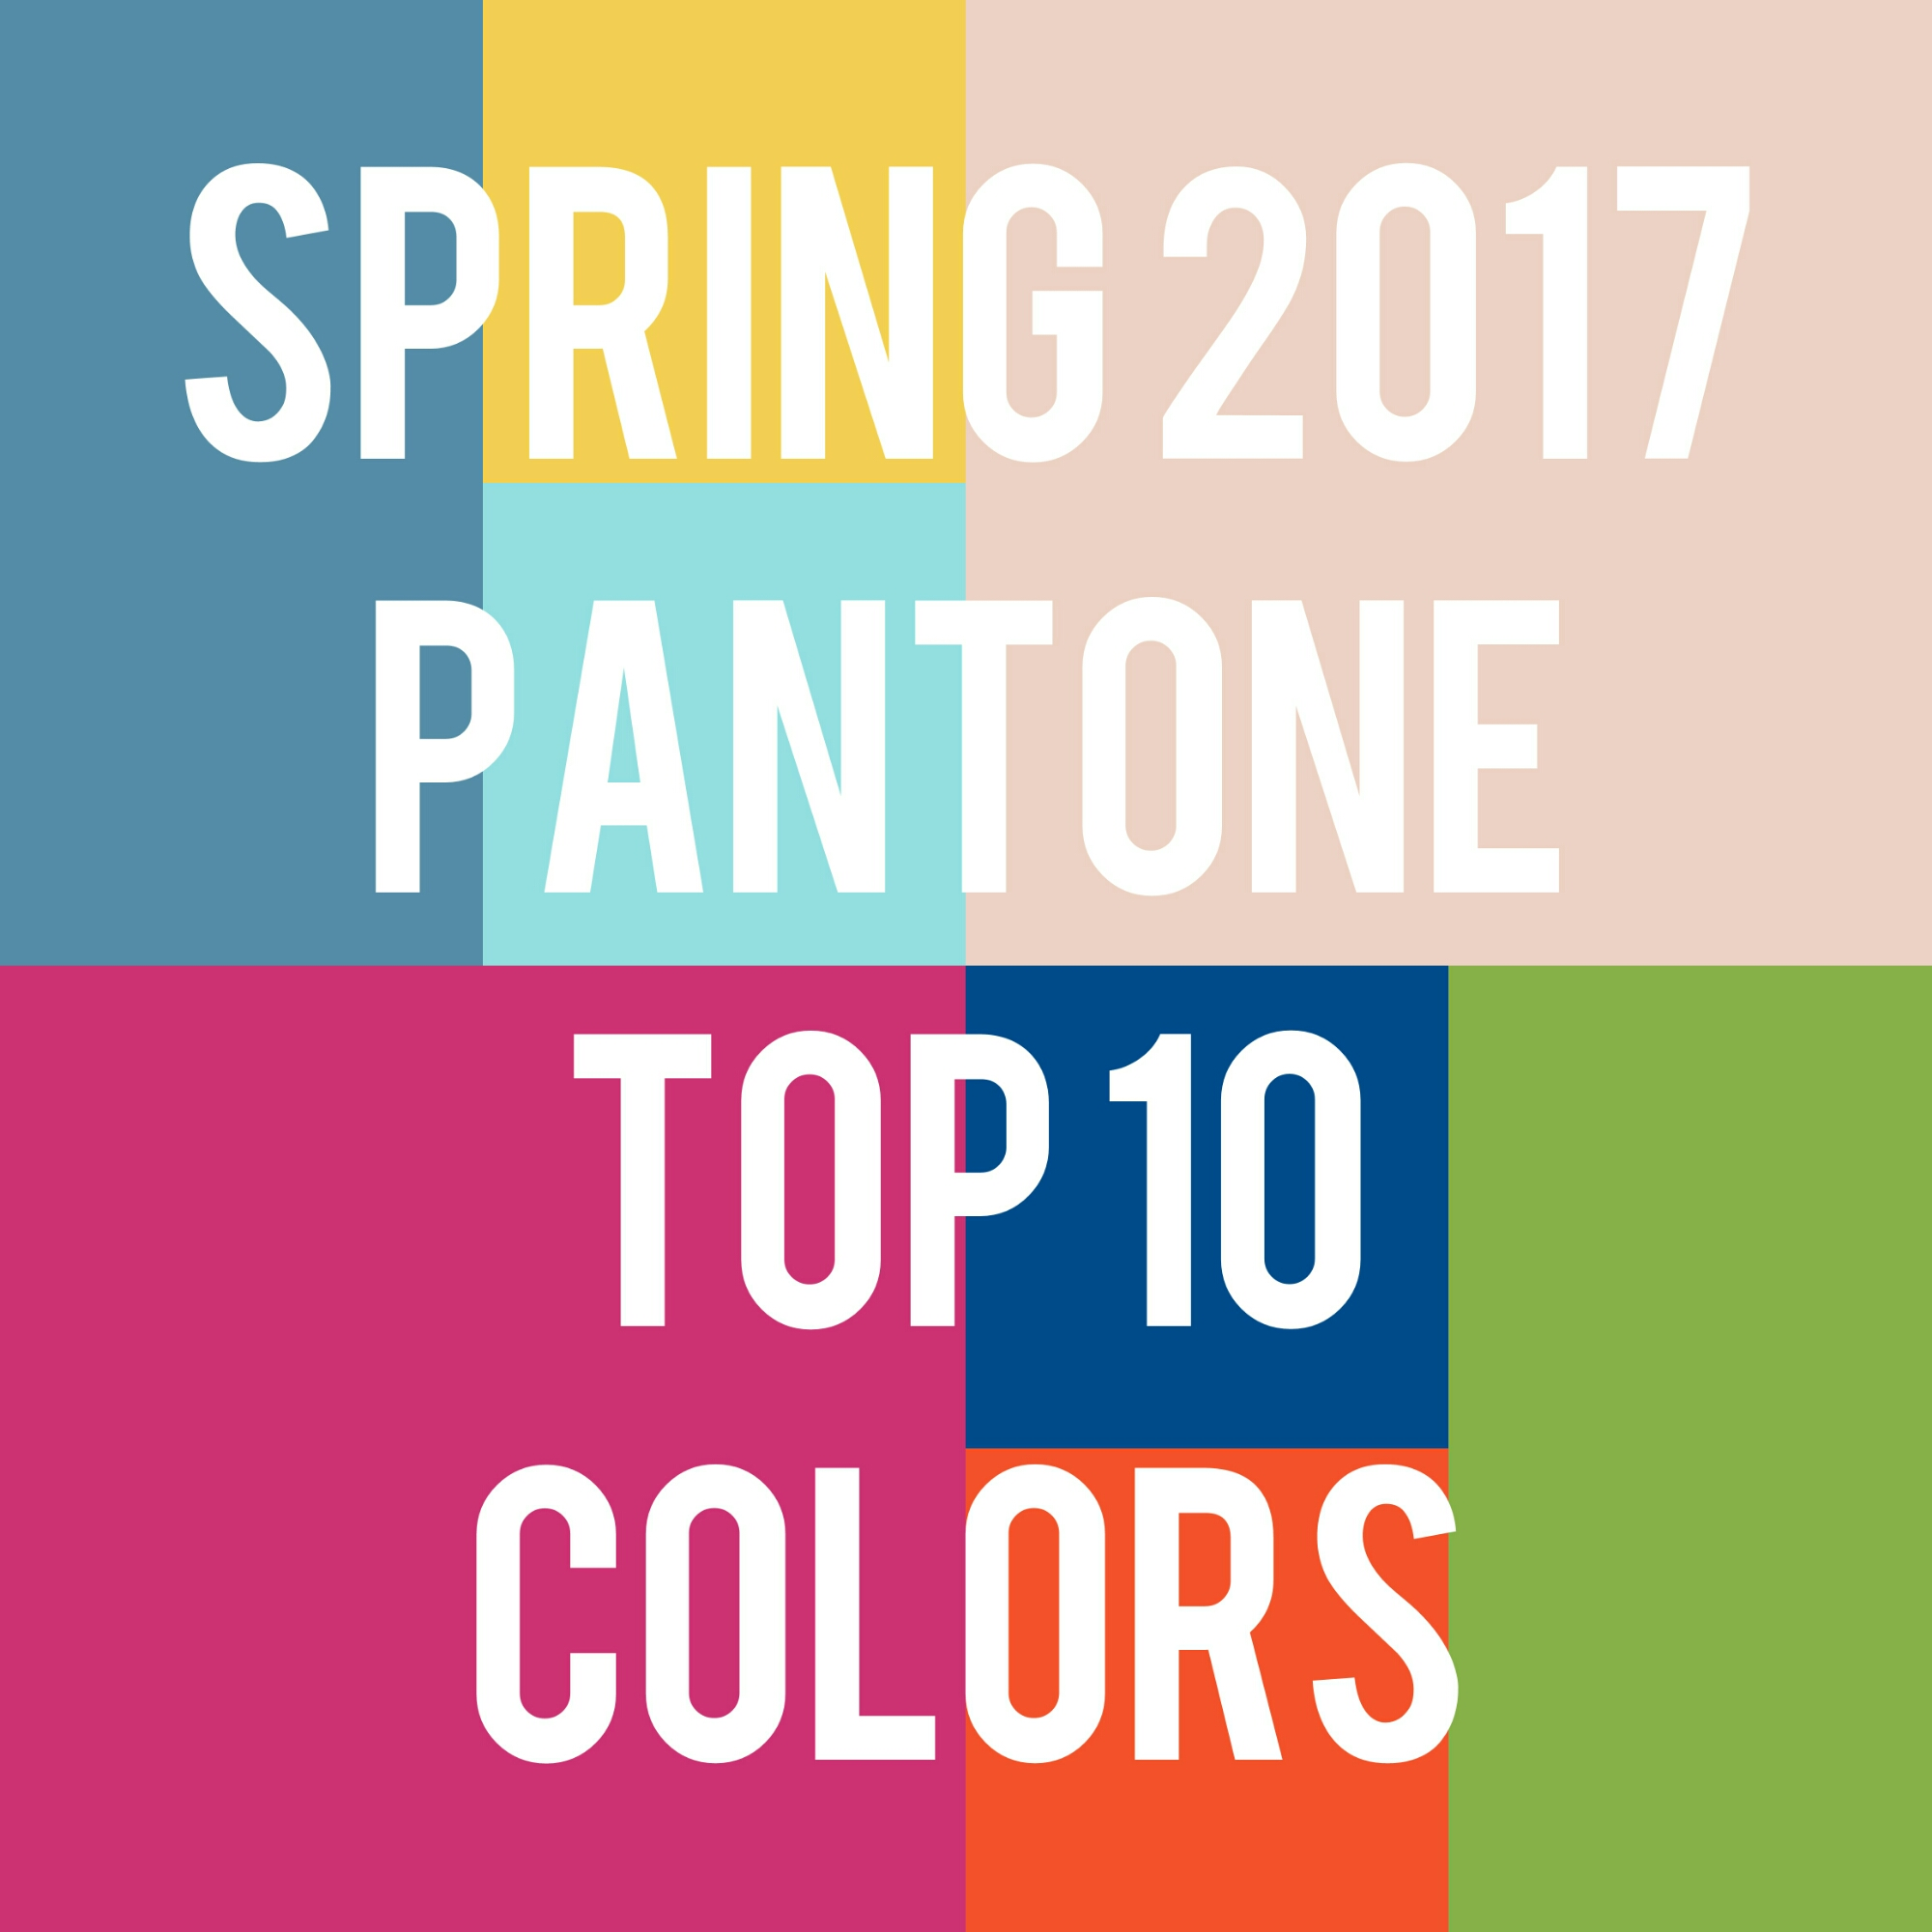 Pantone 2017 The Usage Of Colors In The Life Of Designers The Pantone Color